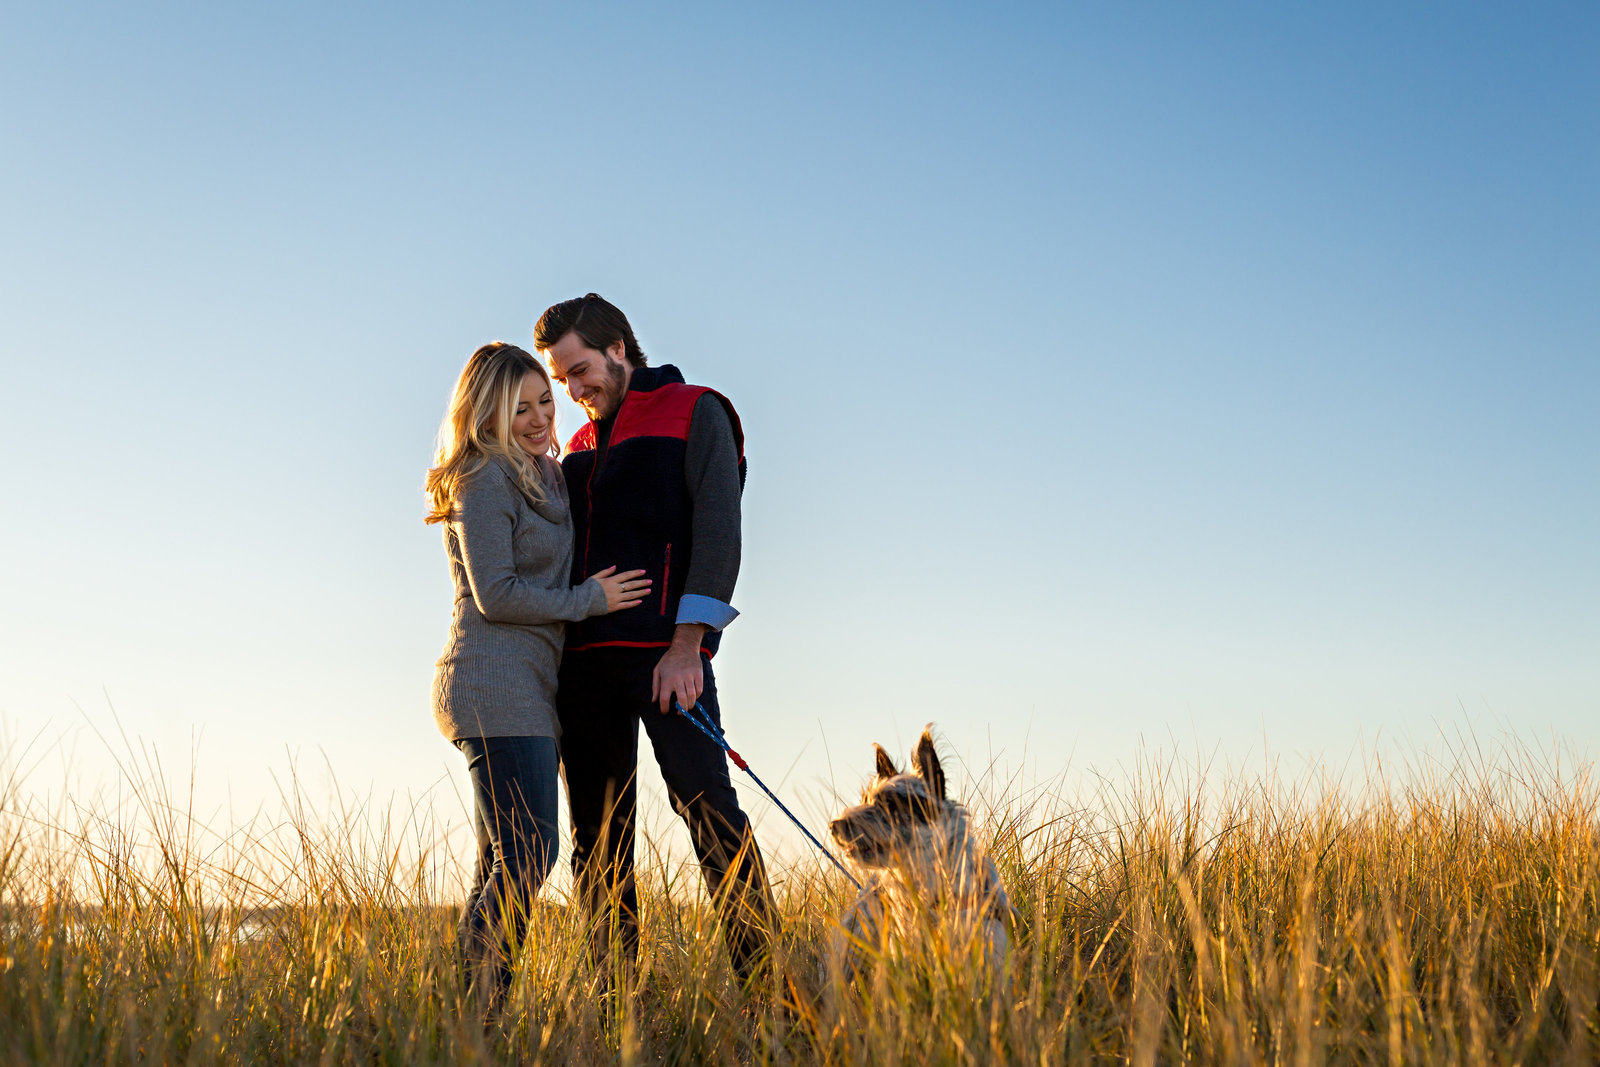 Plum-Island-New-Hampshire-Wedding-Photographers-Engagement-Outdoor-Tall-Grass-Dog-Fall-I-AM-SARAH-V-Photography-Photo